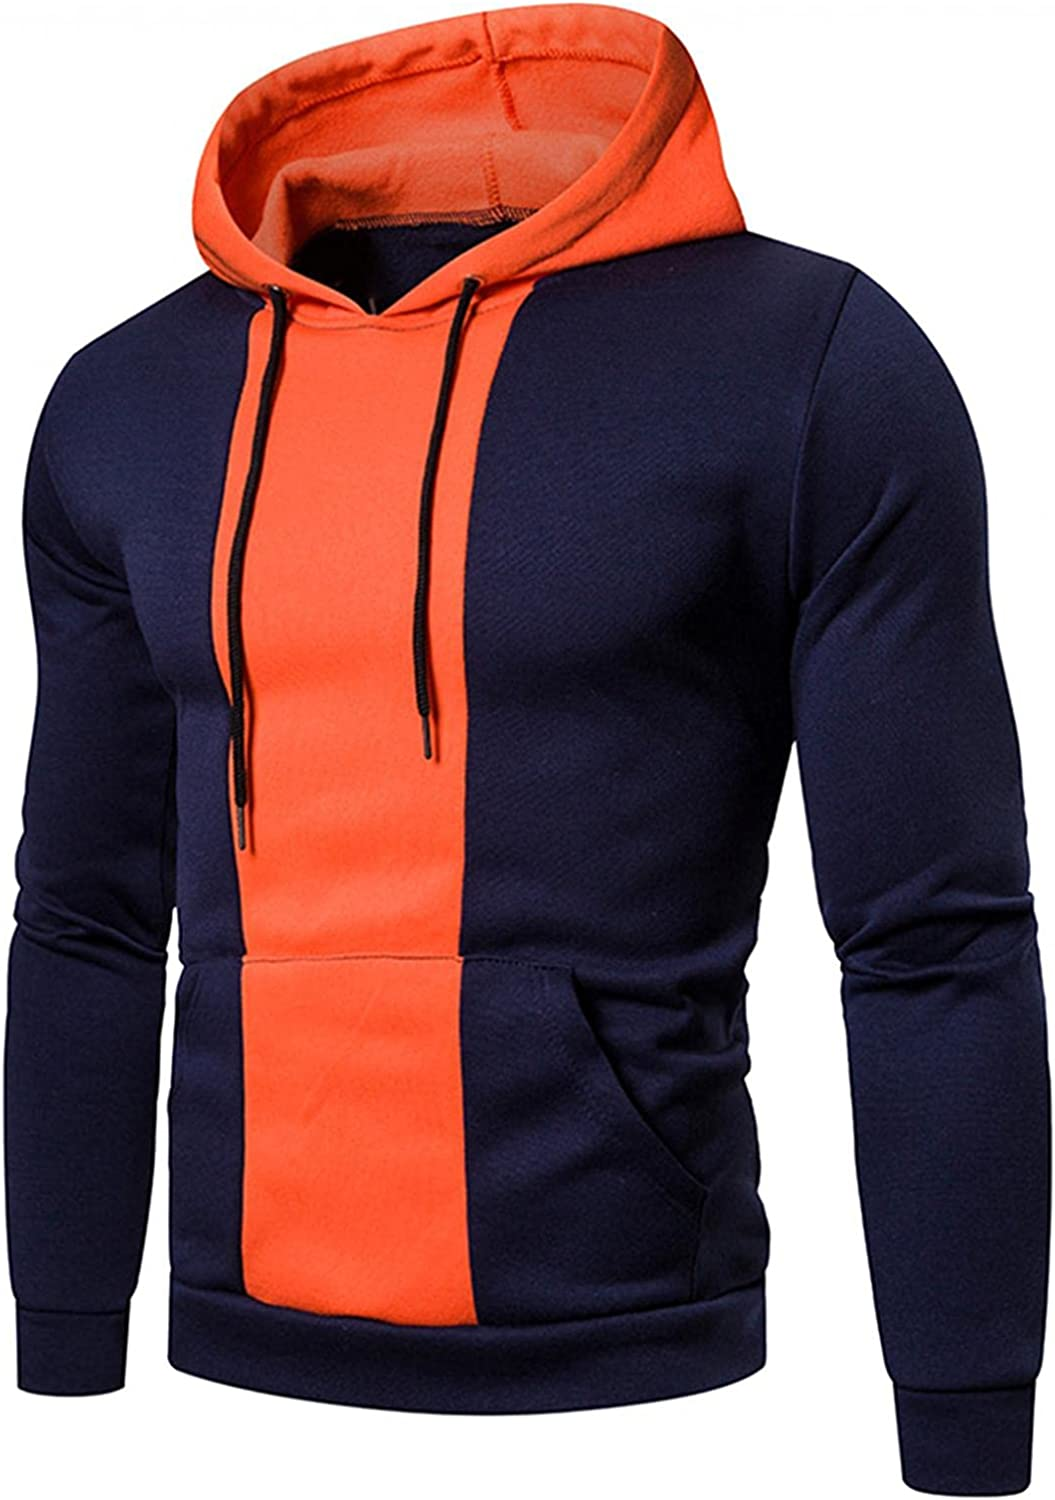 Hoodies for Men Fashion Pullover Color Splice Quick Dry Sweatshirt Patchwork Drawstring Casual Mens Hoodies